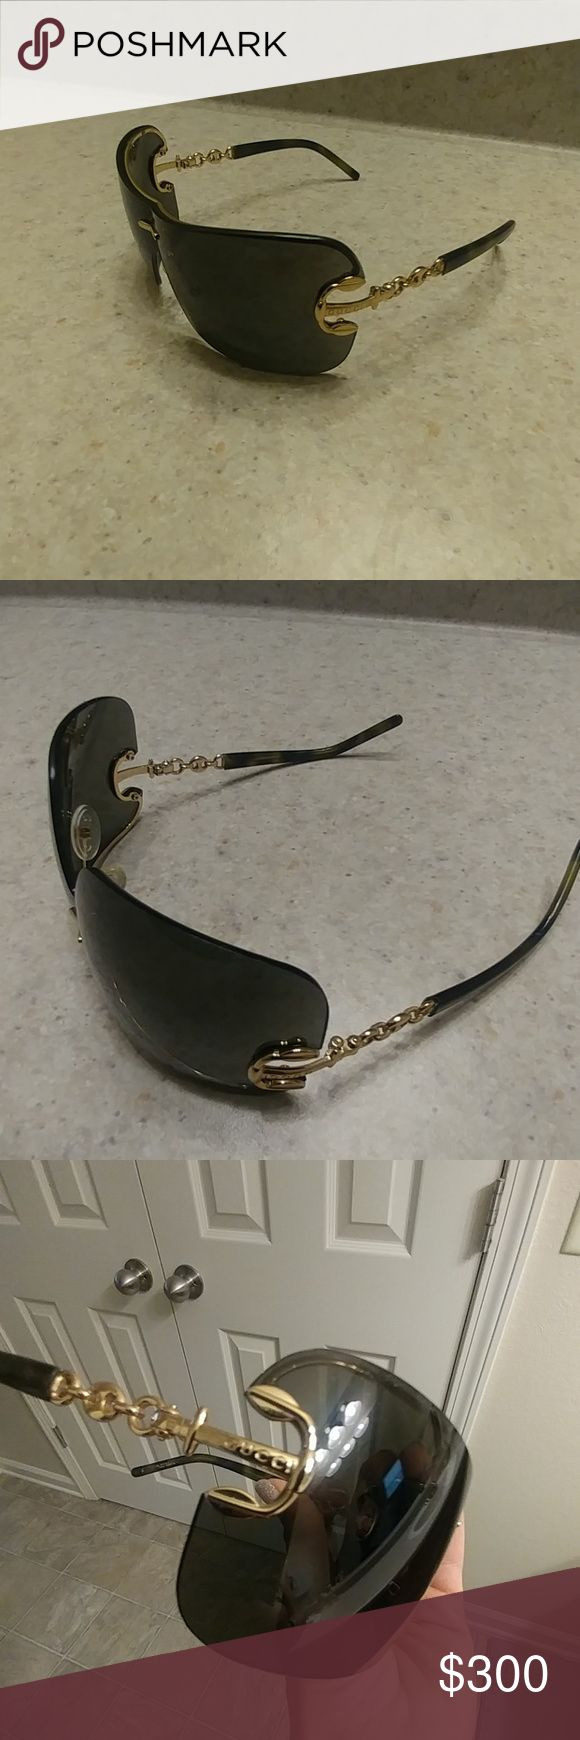 Authentic Gucci Sunglasses The sunglasses are in very good condition no scratches or damage the authentic number code inside is a bit faded from the wear and I don't have the case anymore over all they are very beautiful. Gucci Accessories Sunglasses